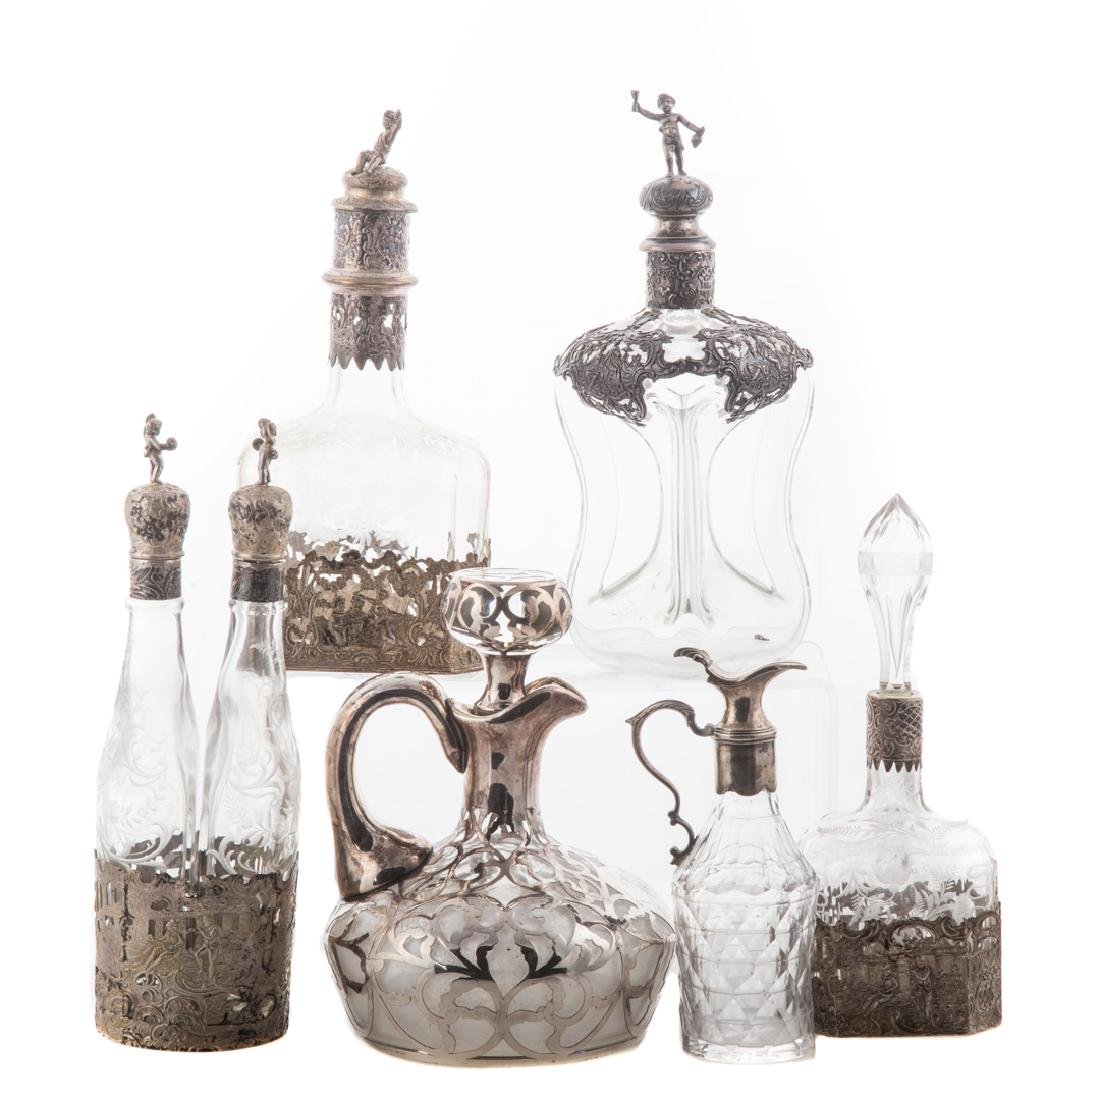 Collection of silver-mounted decanters